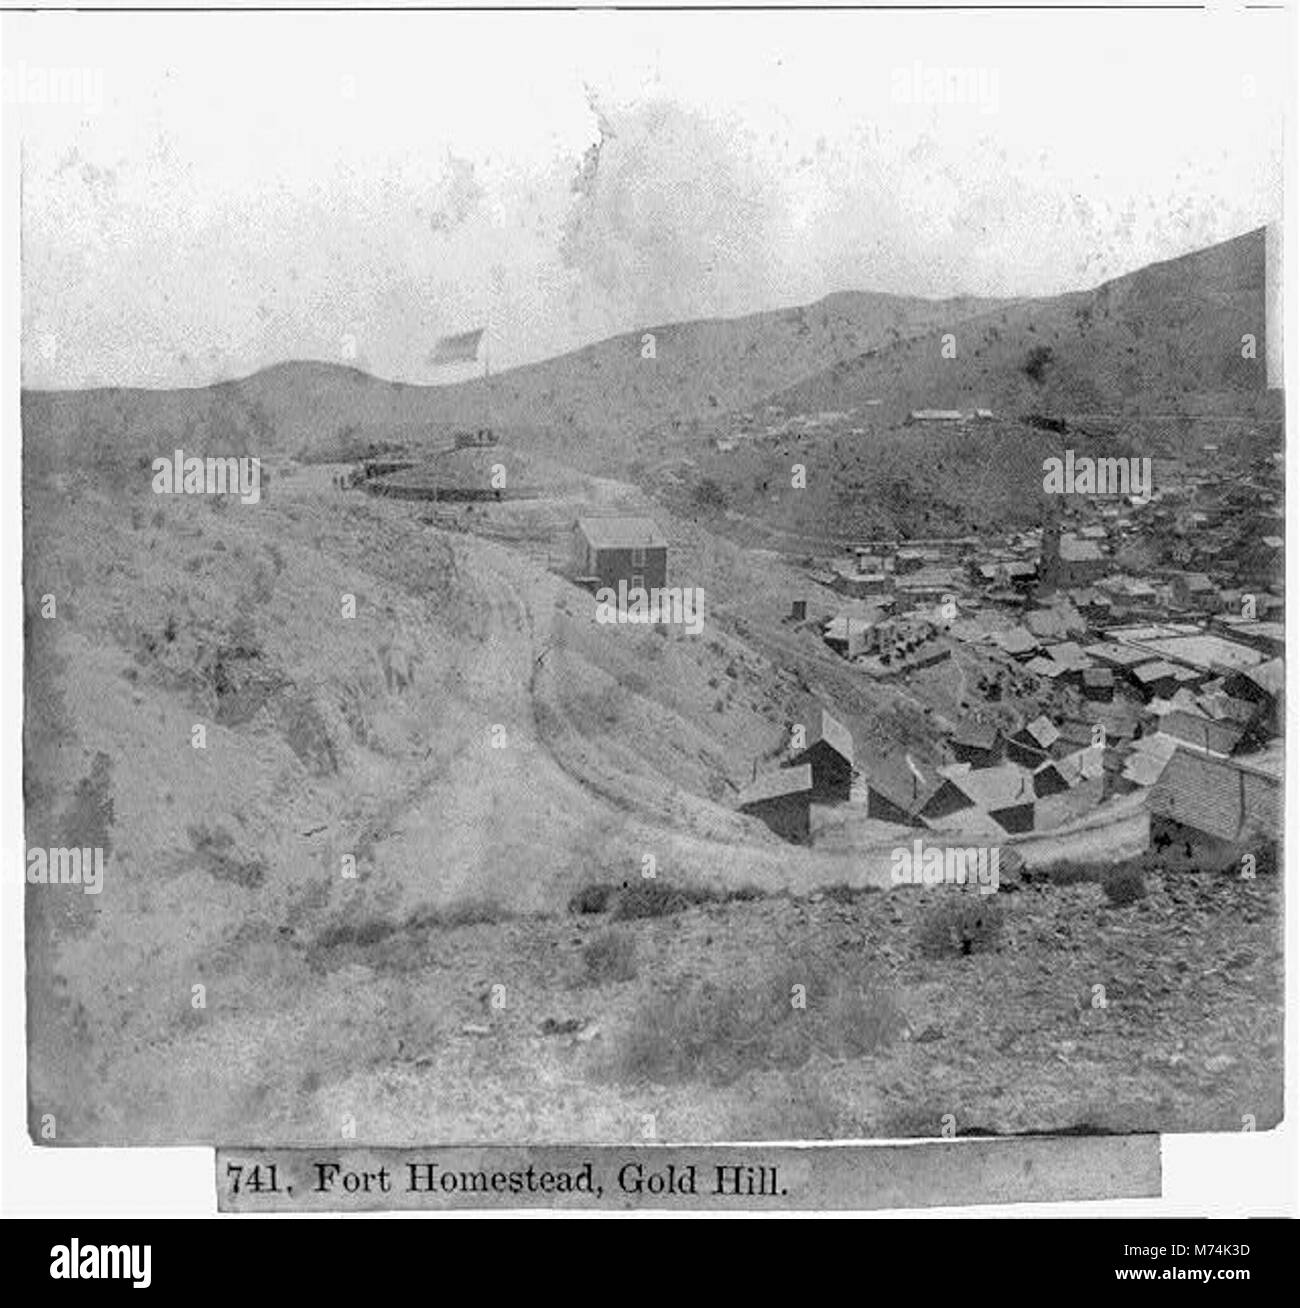 Fort Homestead, Gold Hill LCCN2002723117 - Stock Image